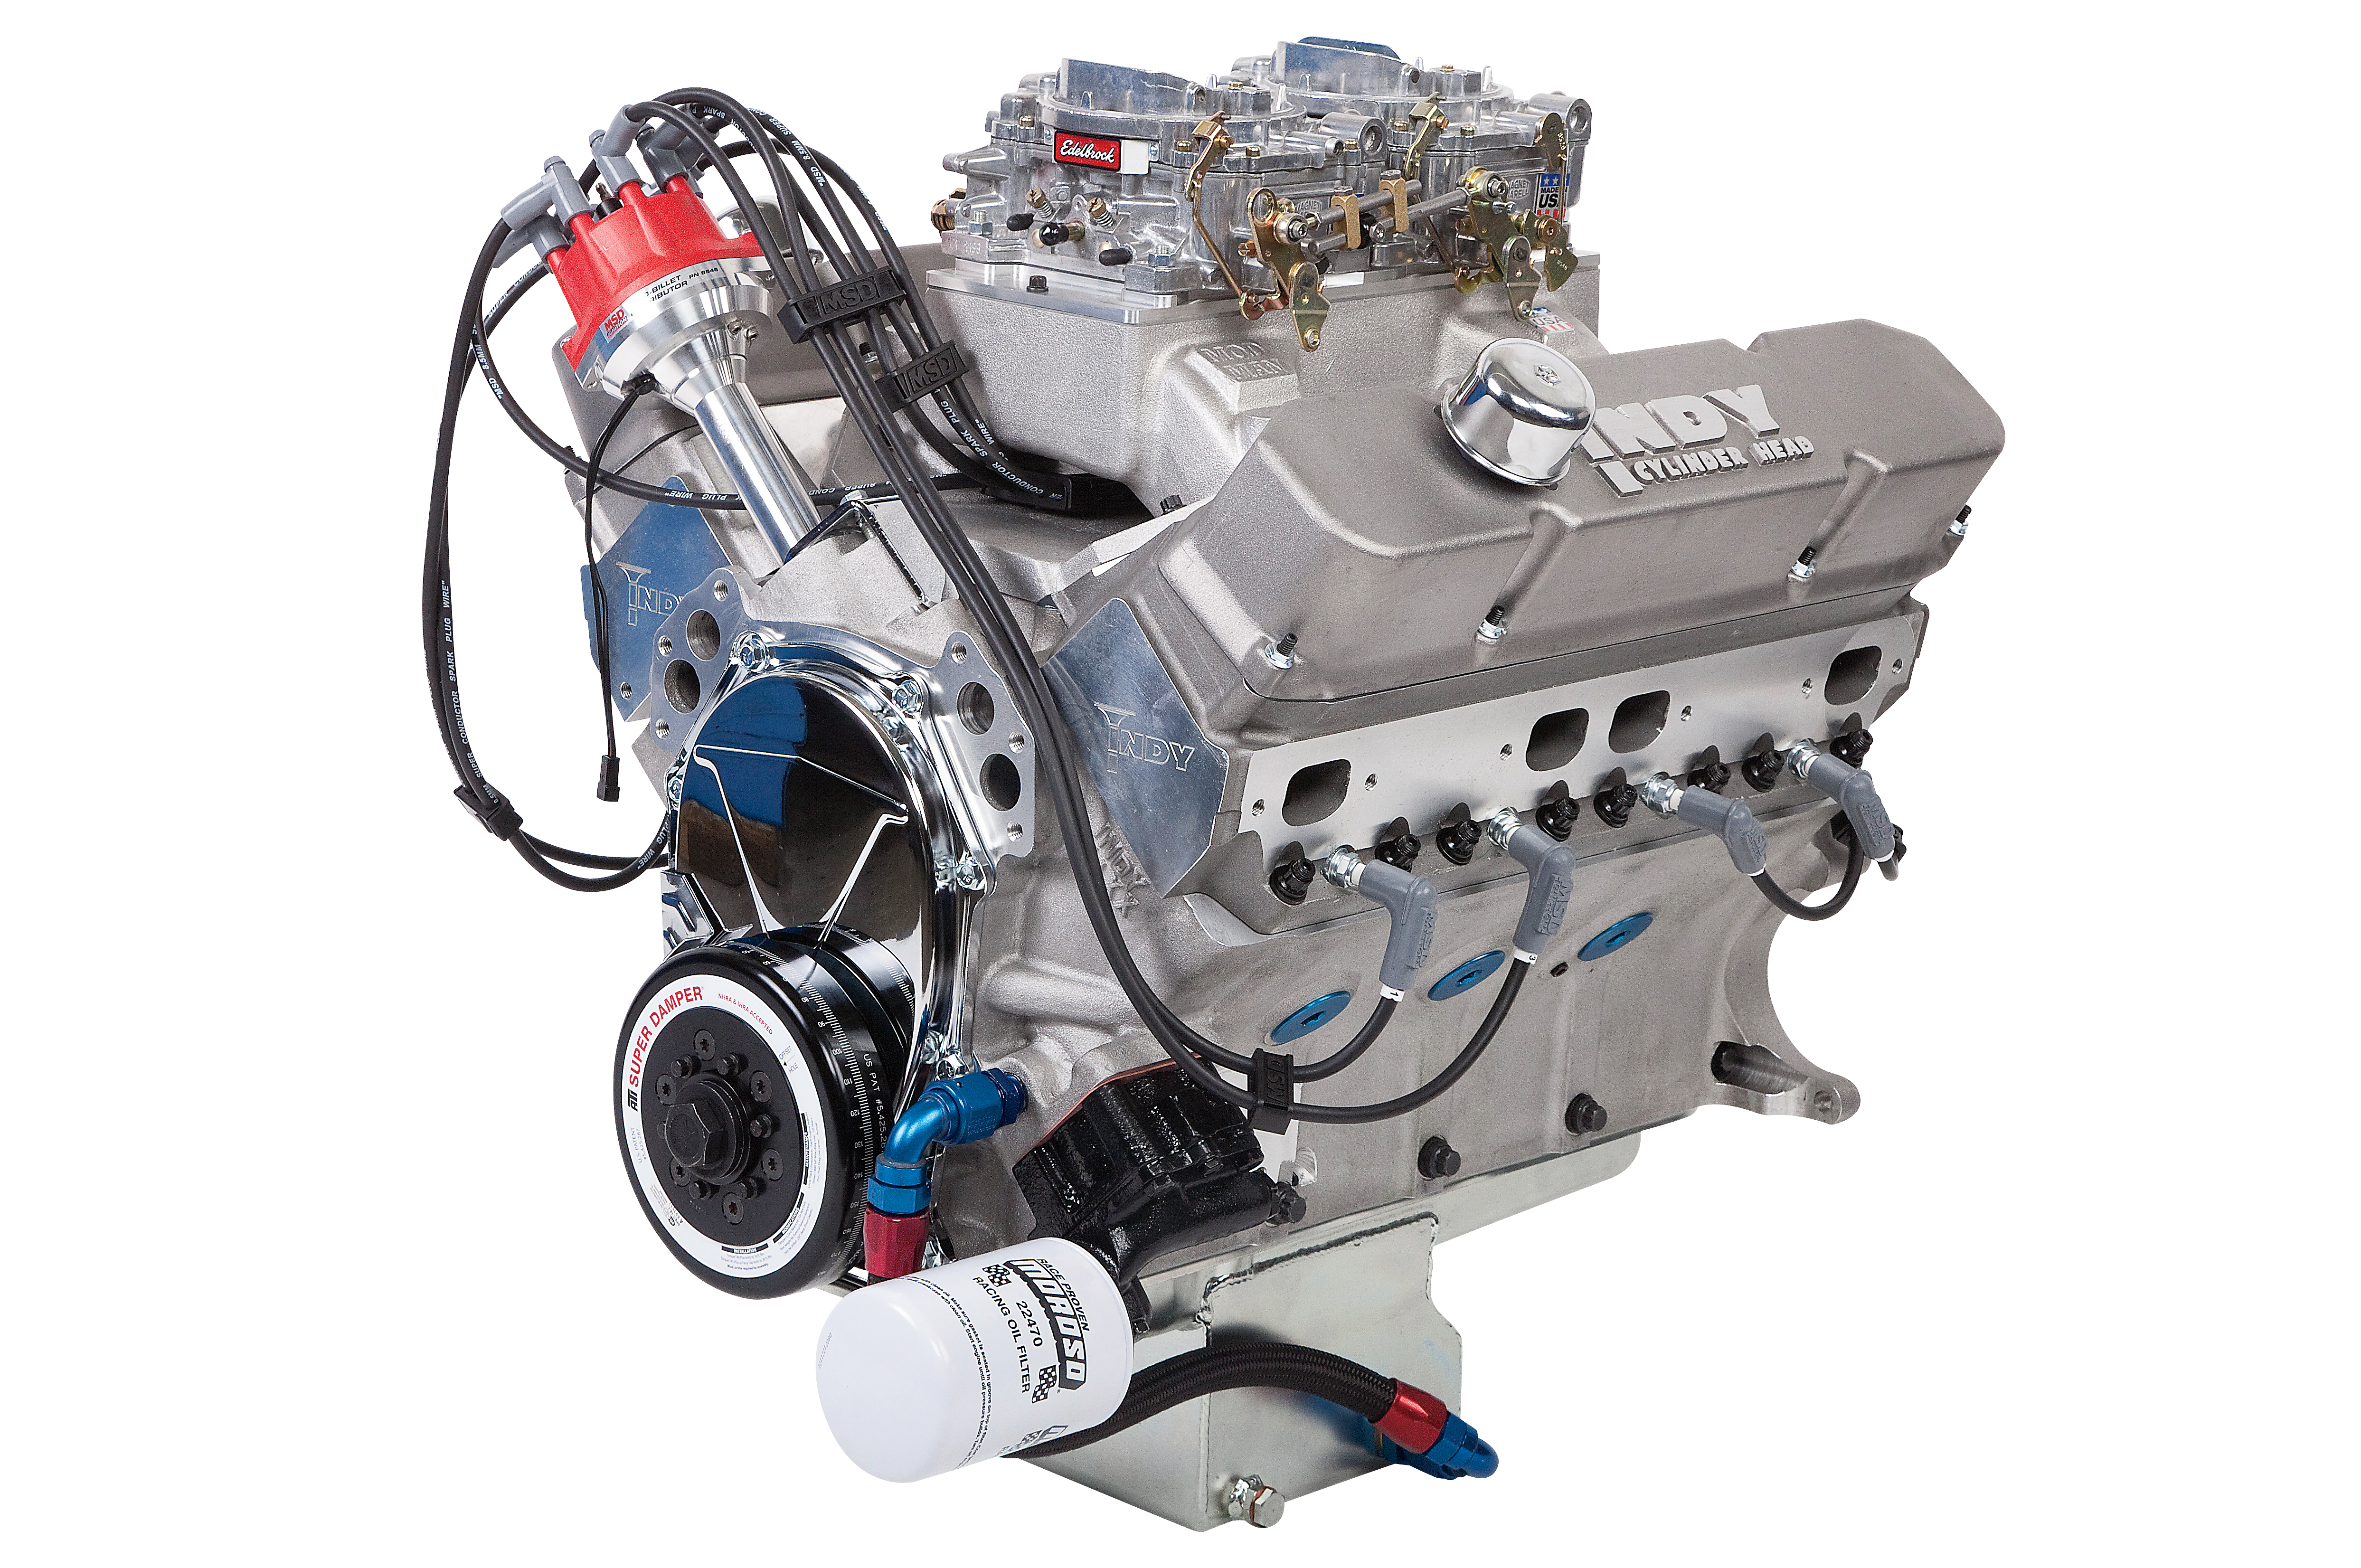 This all-aluminum 500ci low-deck wedge crate engine from Indy Cylinder Head is what will power our upcoming '68 Plymouth Valiant project. It makes 657 hp with Indy's EZ-1 cylinder heads, a Mod Man dual-quad intake, and a solid flat-tappet camshaft.